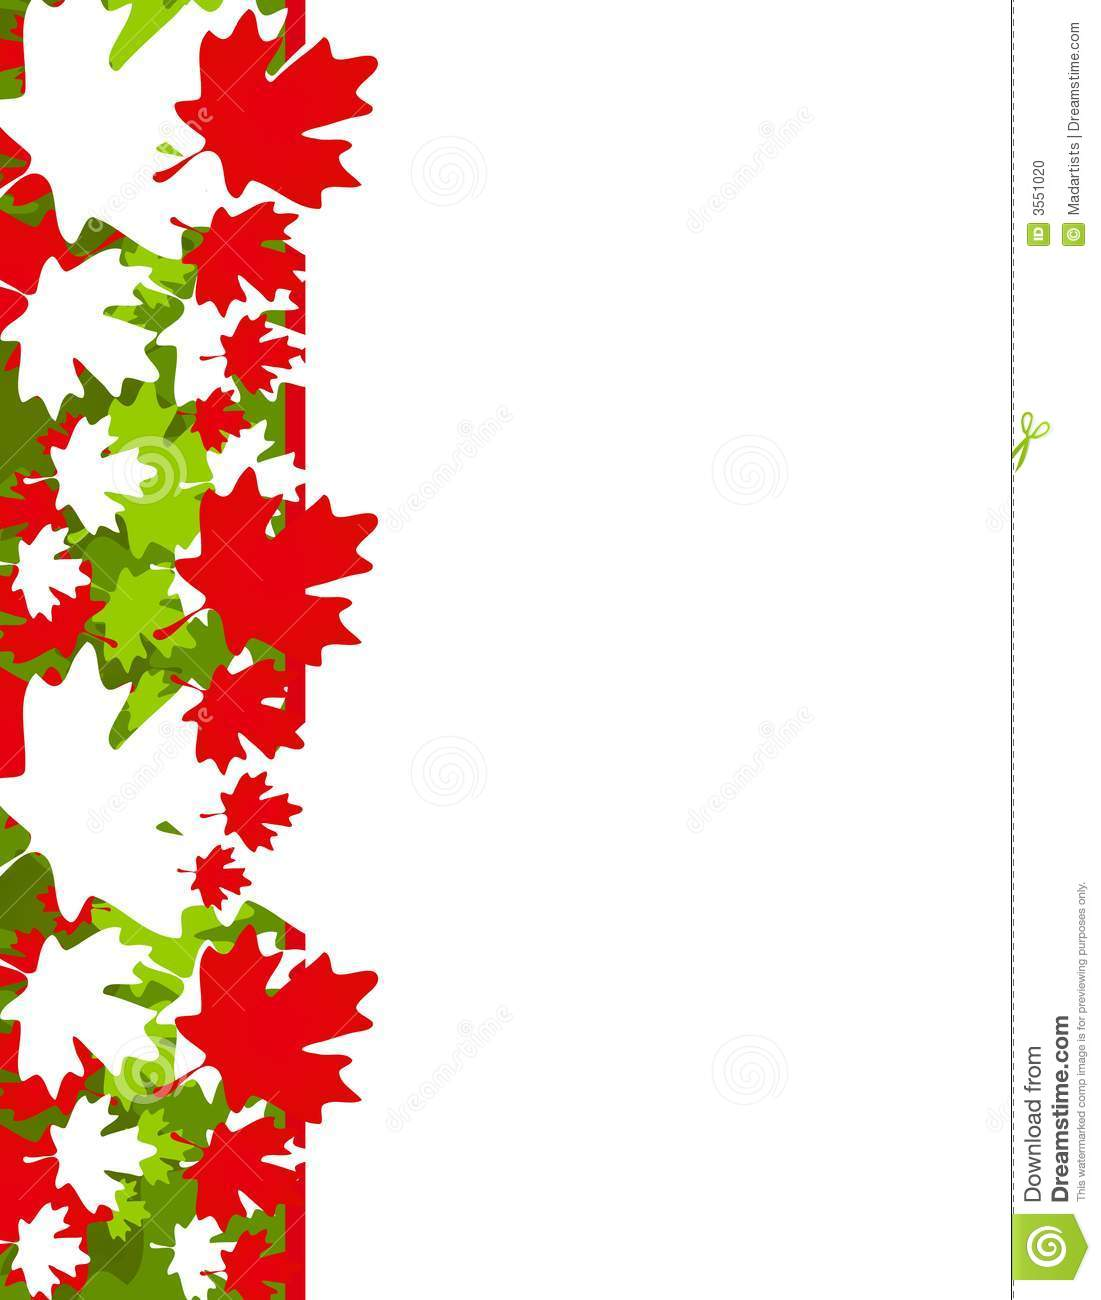 Maple Leaf Border Clipart.